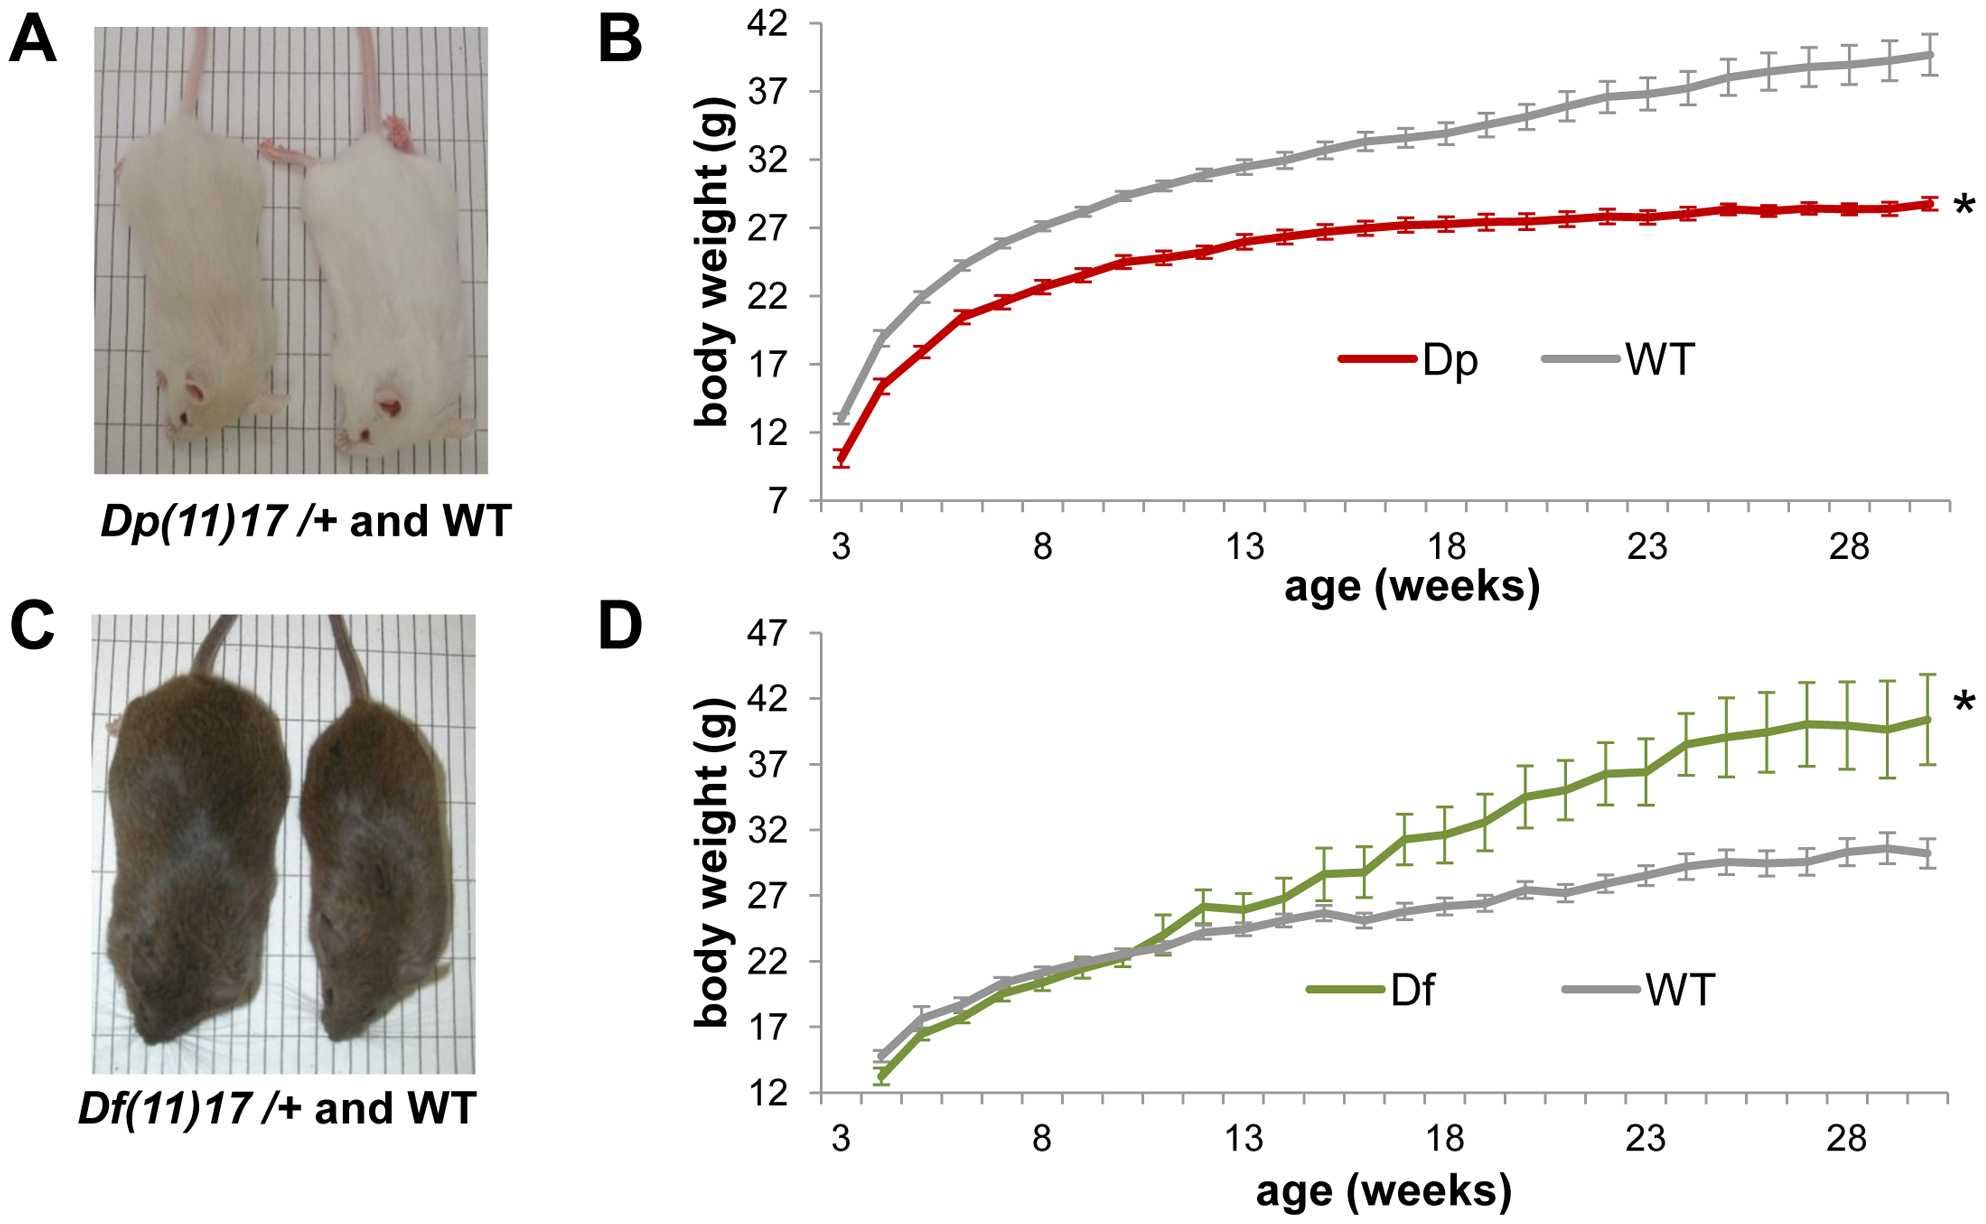 <i>Dp(11)17/+</i> mice have reduced and <i>Df(11)17/+</i> mice have increased body weight.